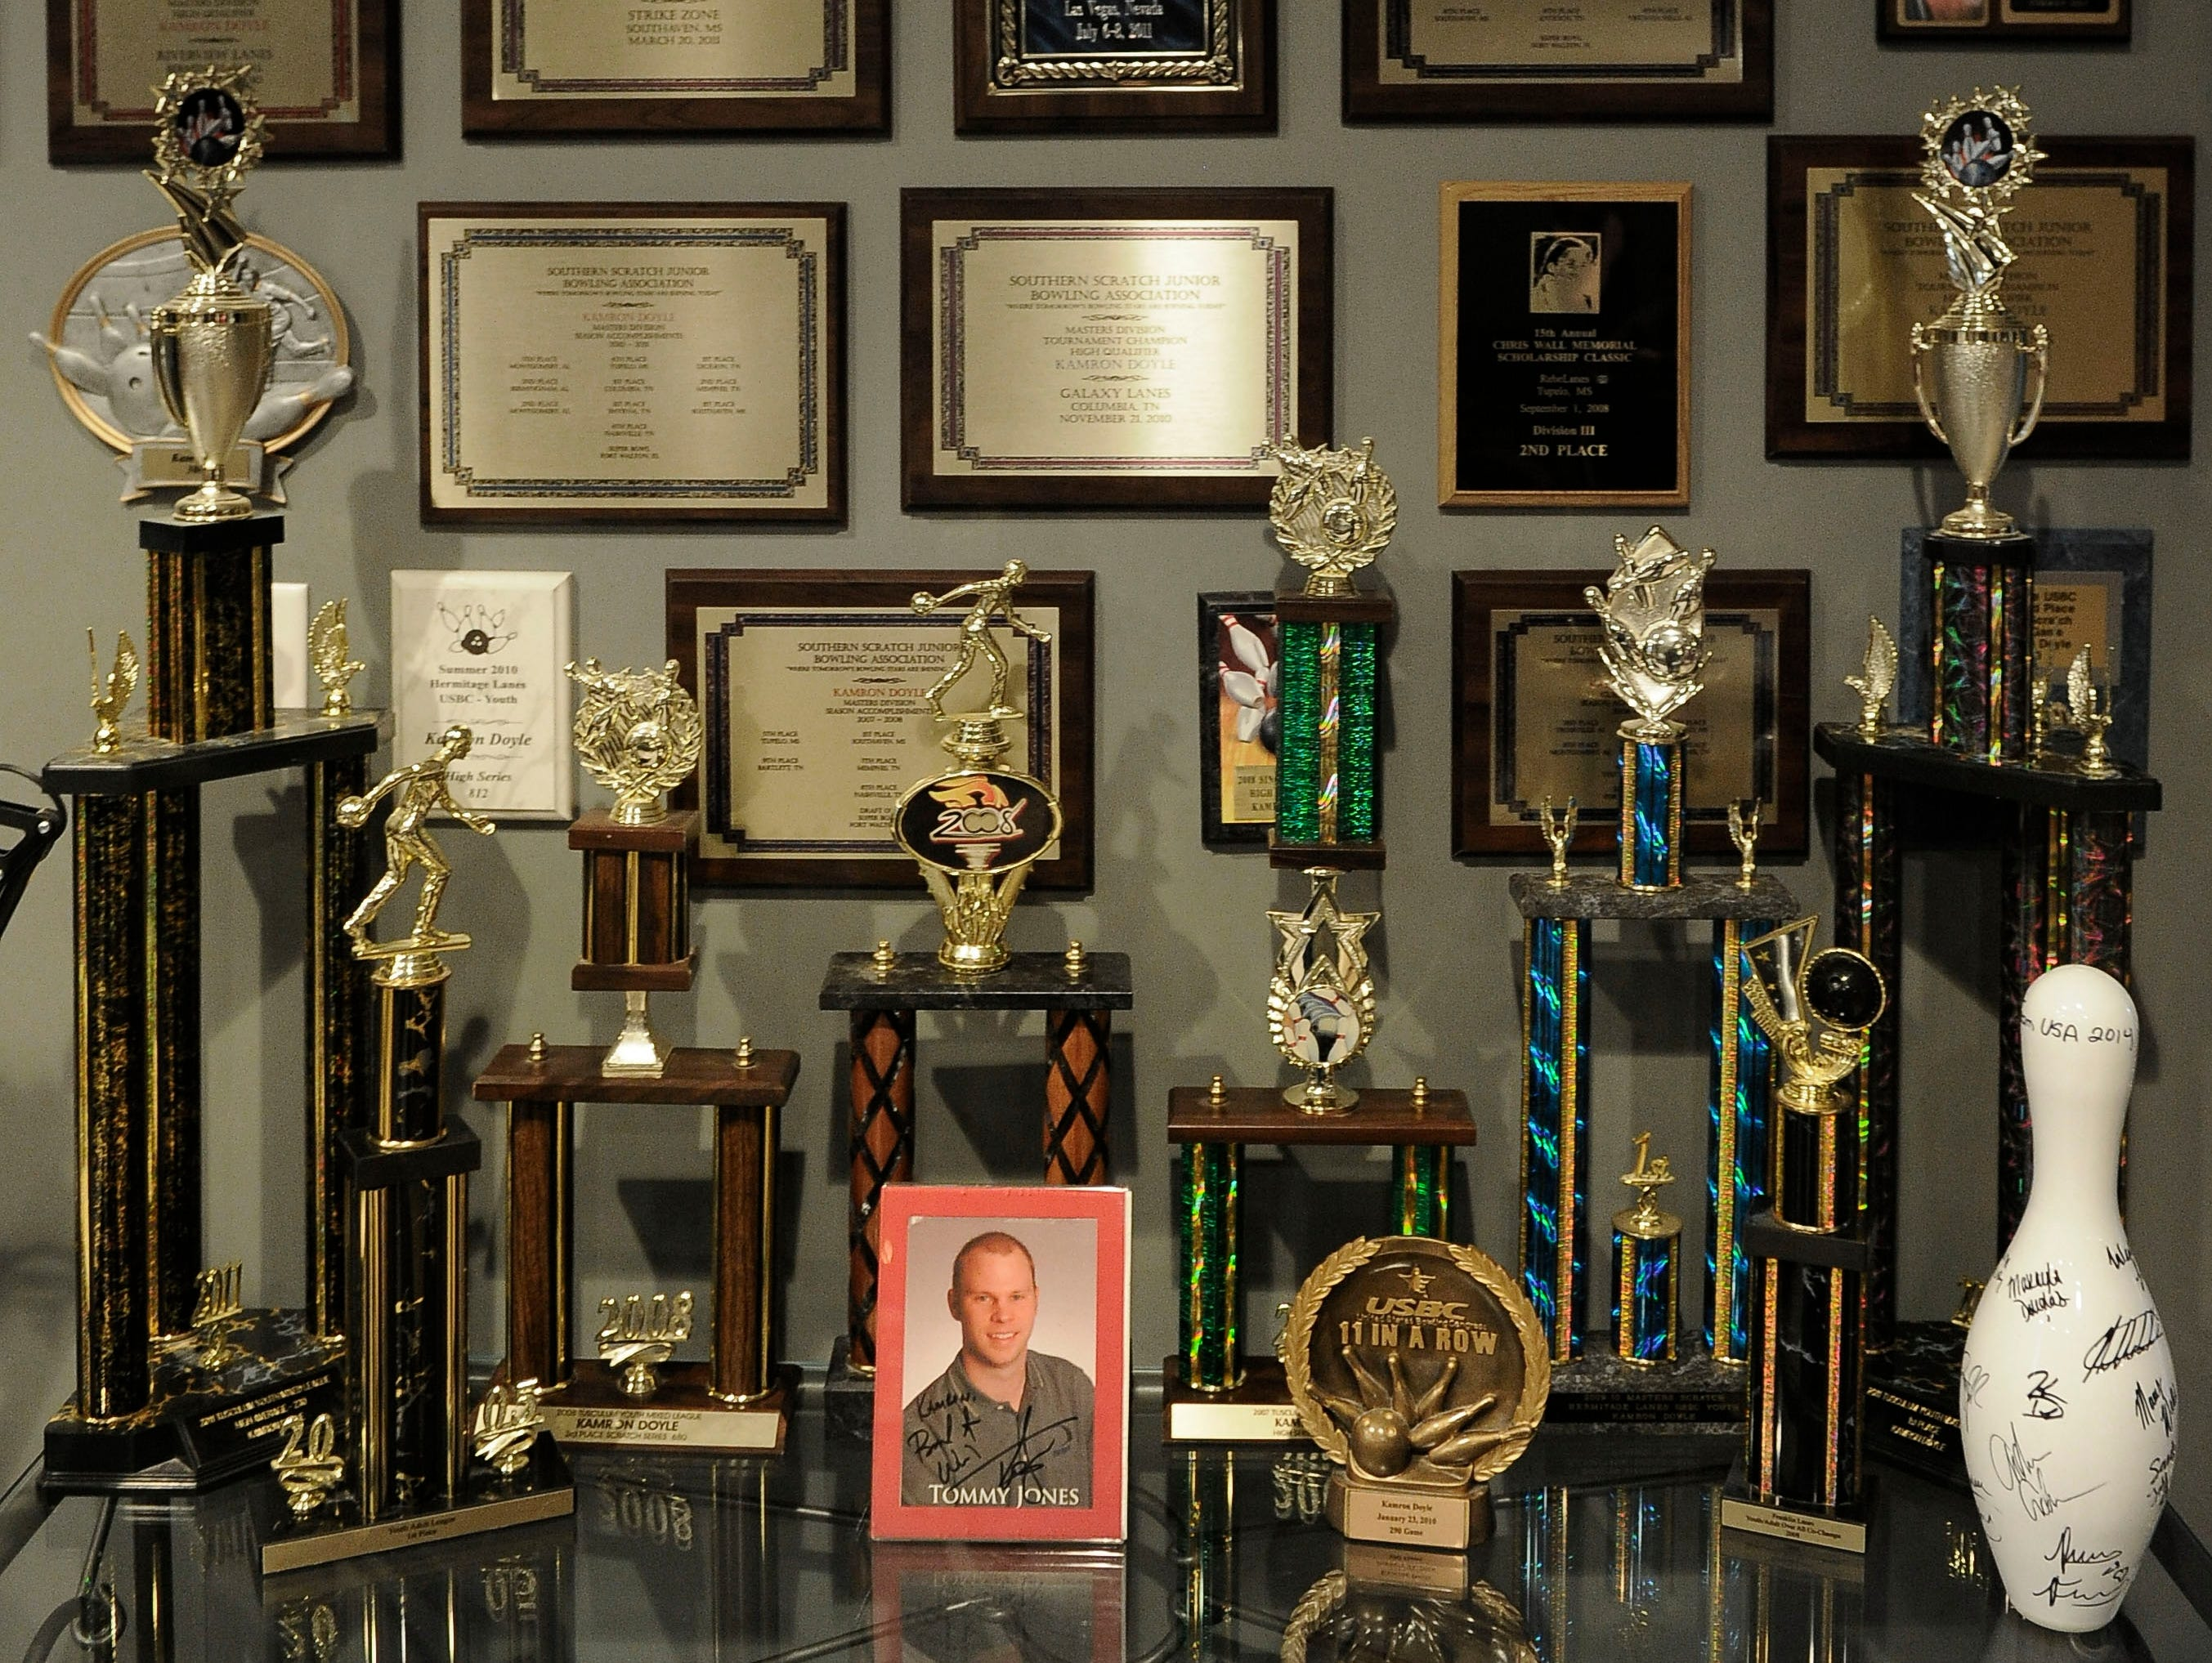 Kamron Doyle, 17, became the youngest bowler in history to win the Team USA Trials. His awards cover the walls at his Brentwood home.